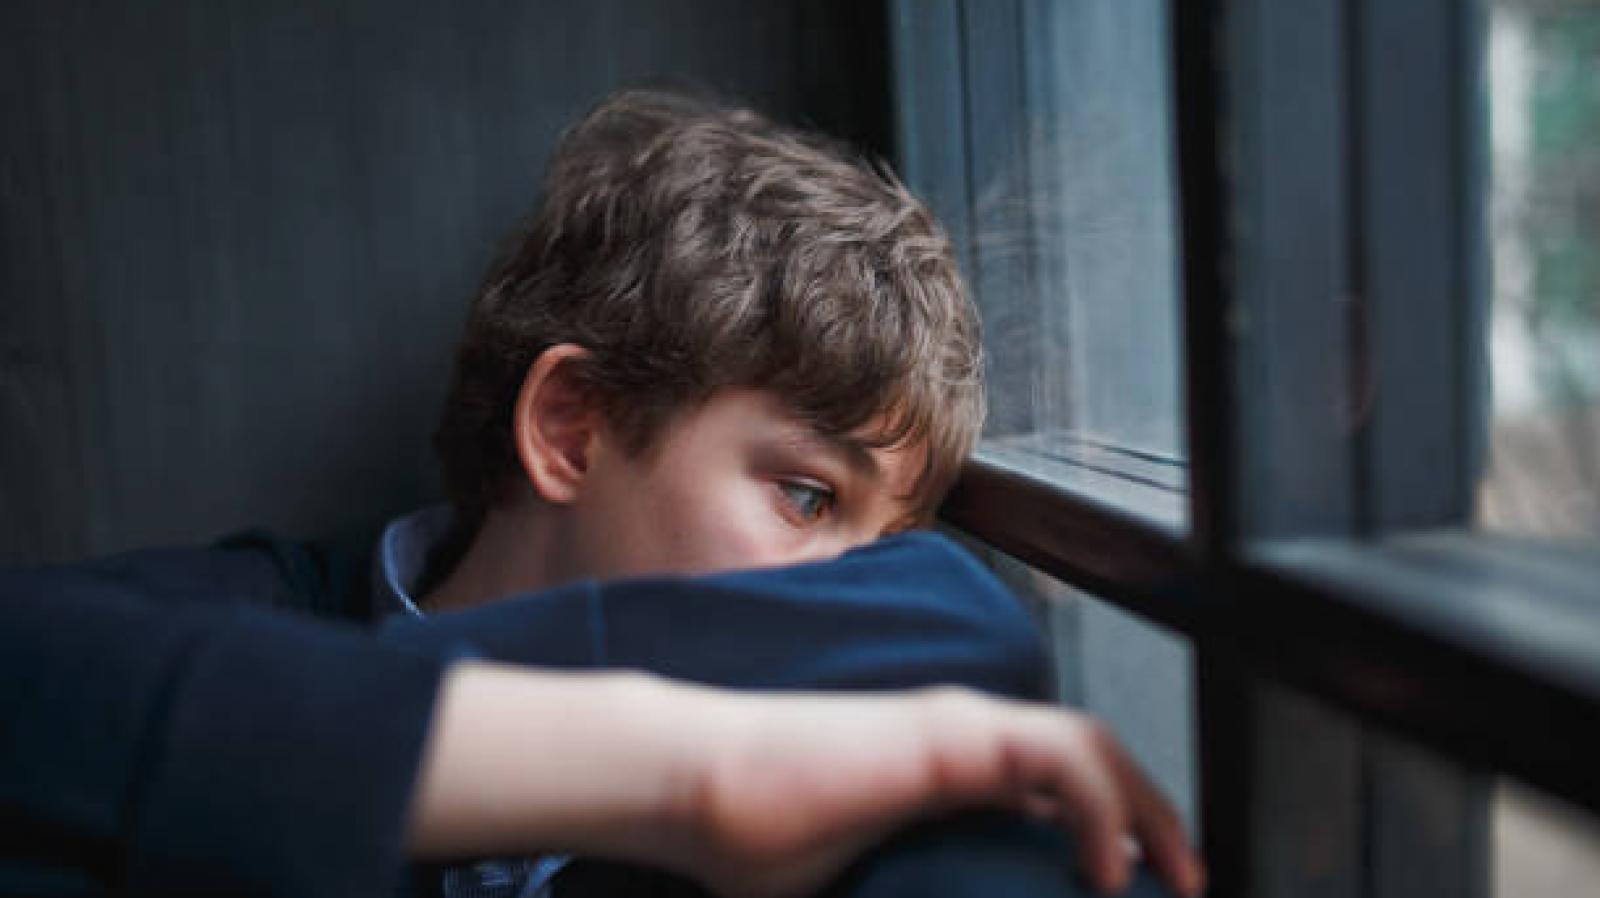 A young boy looks sad whilst looking out a window